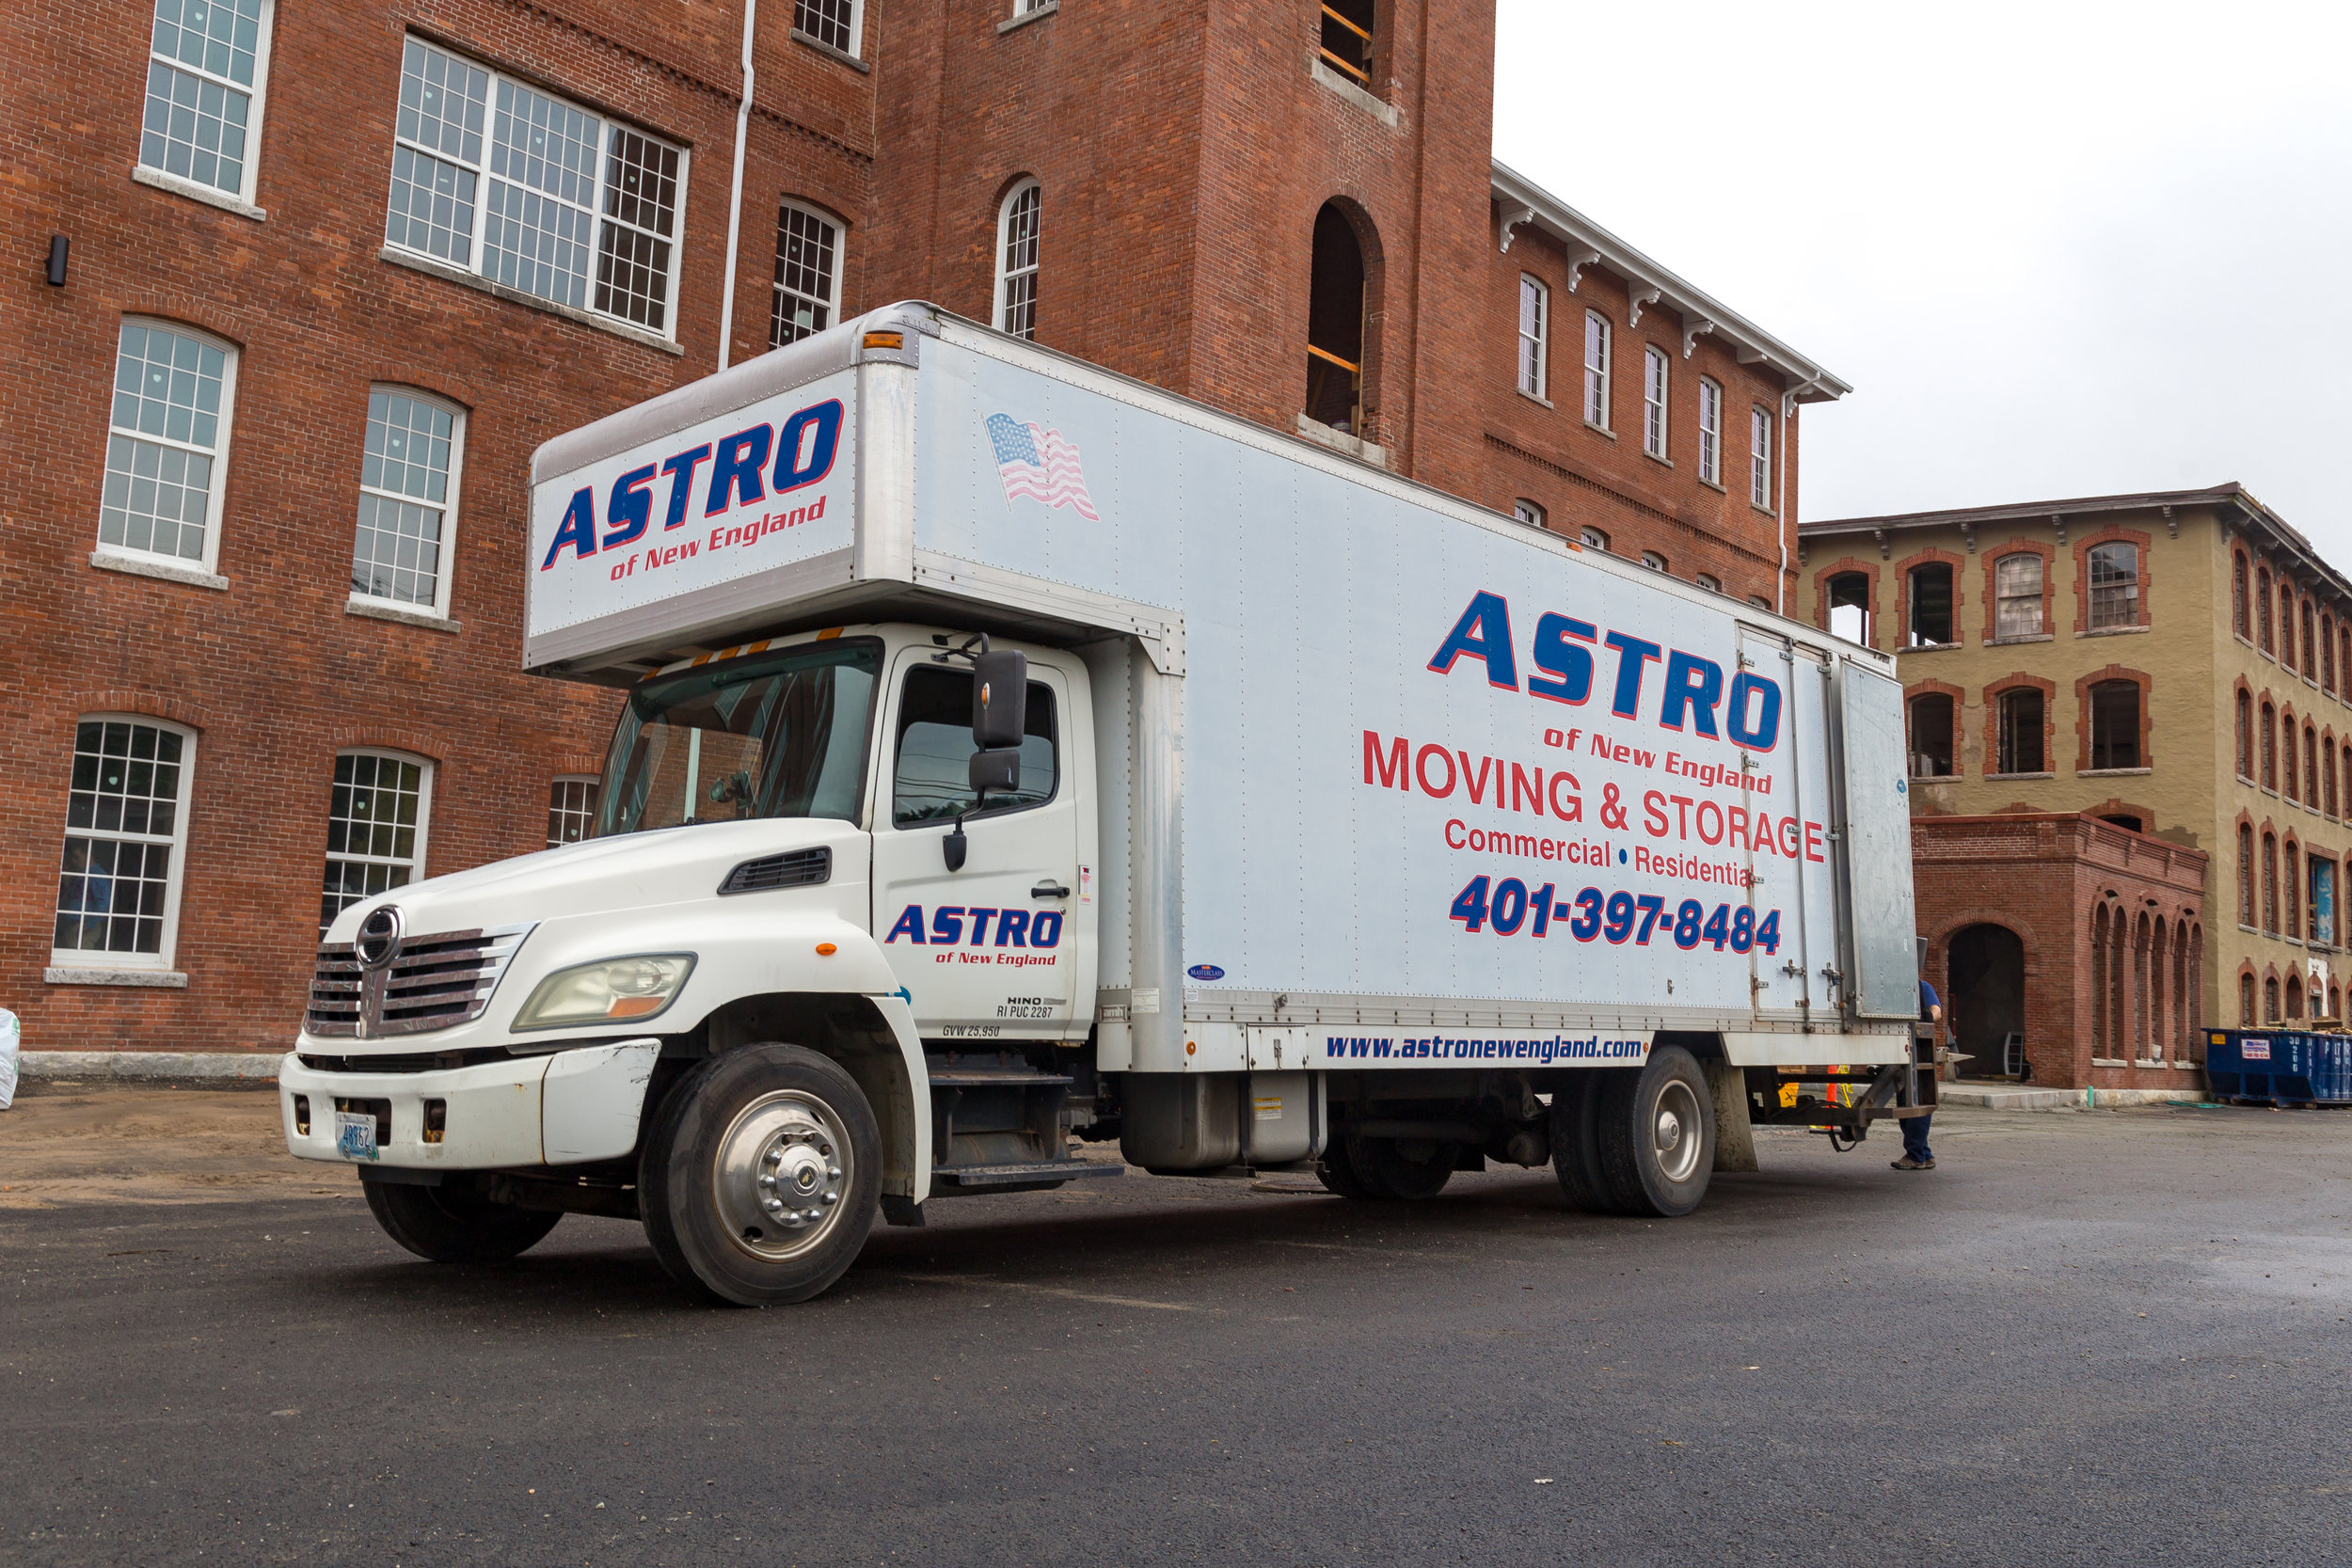 MOVING SERVICES - Same day service: RI to RI & all surrounding New England cities & towns. Overnight holds for next day delivery.